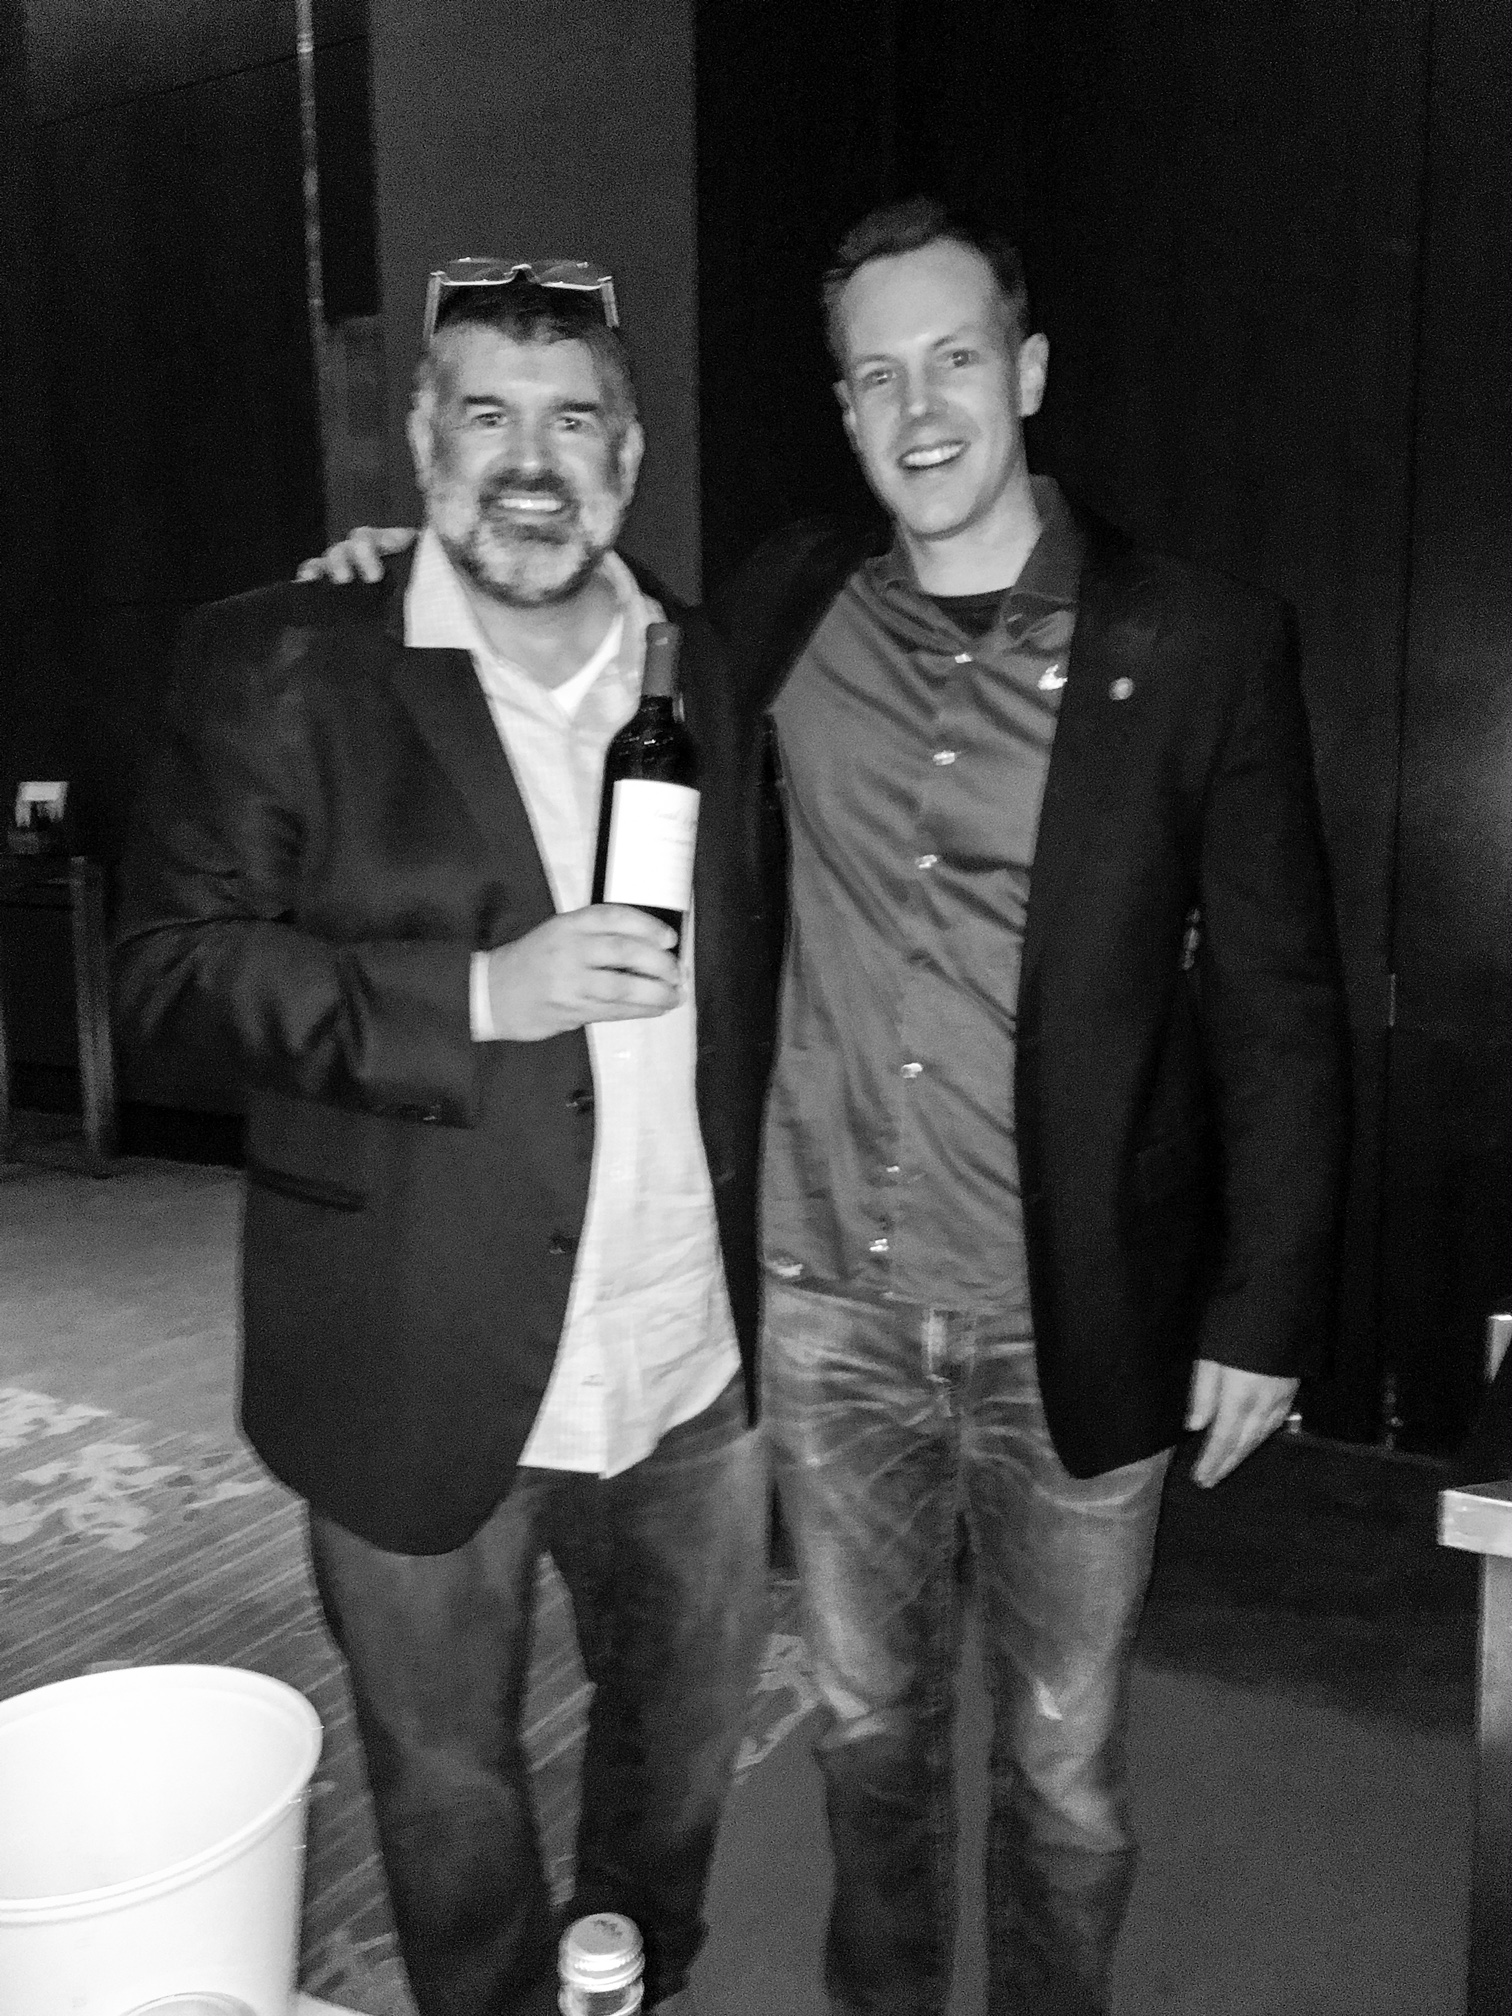 I had a great time catching up with Mark Ryan McNeilly at a wine event in NYC.